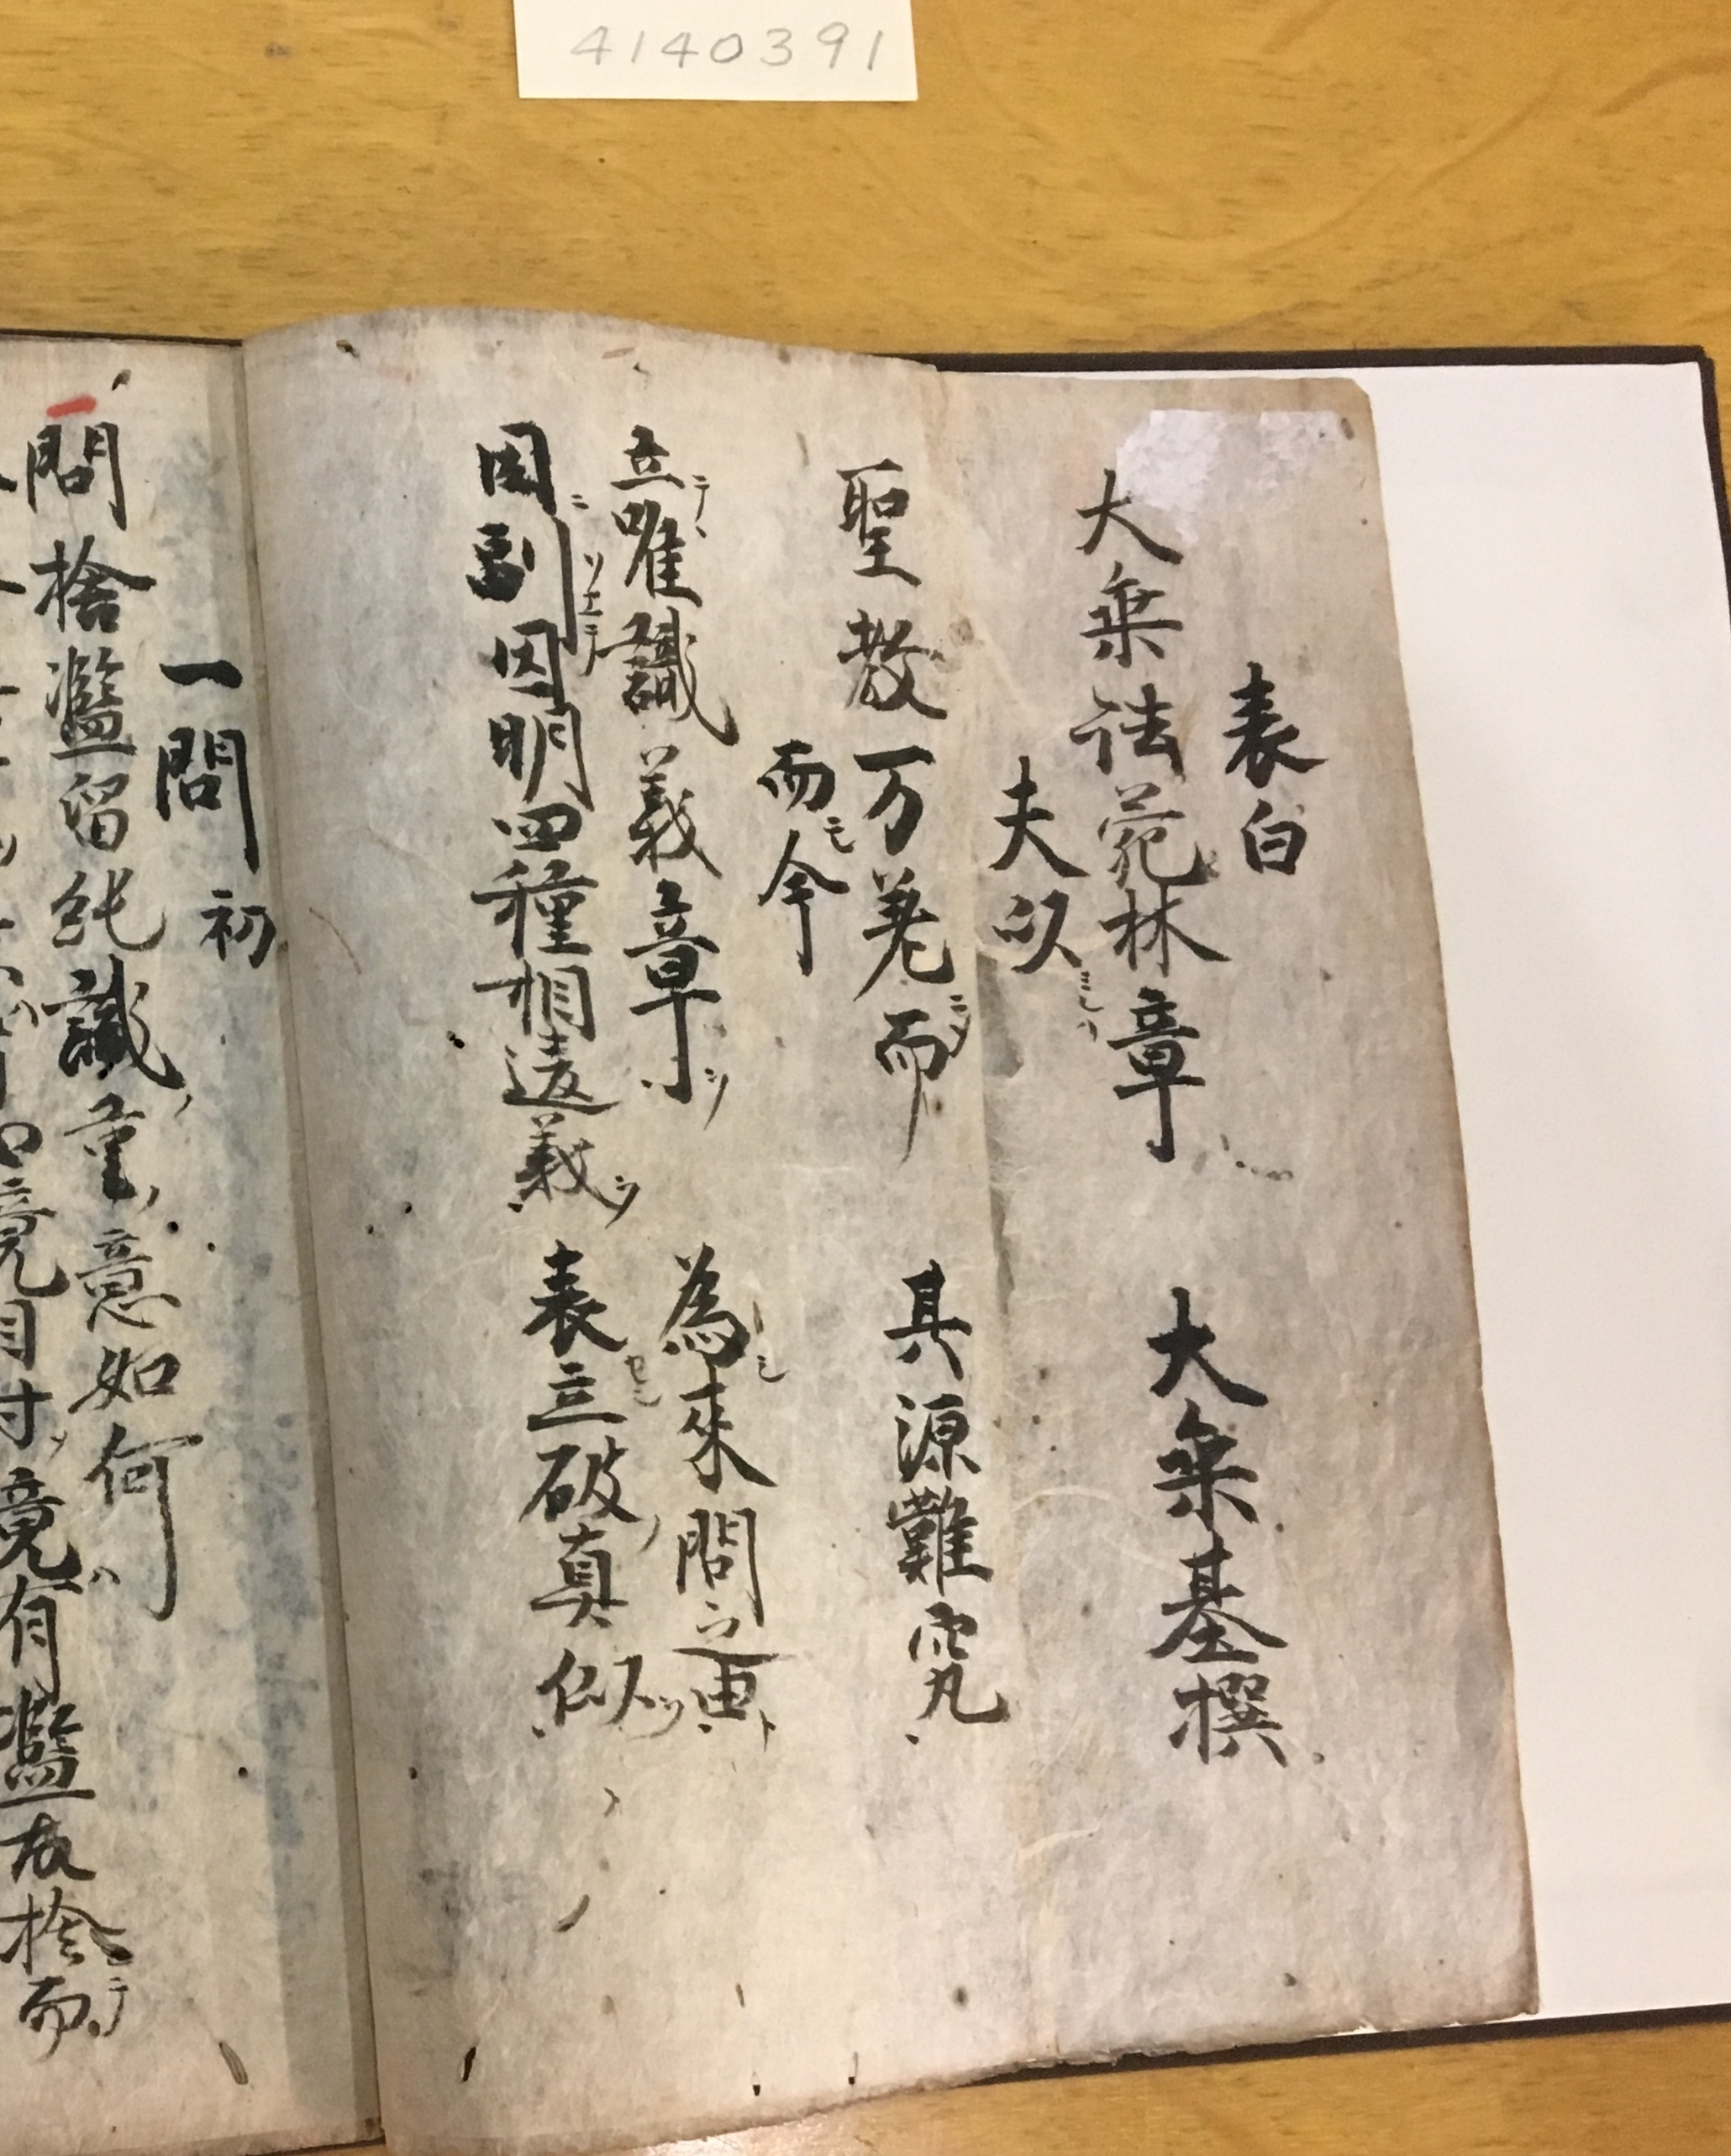 The first page of the manuscript (Photo courtesy of Jingjing LI)